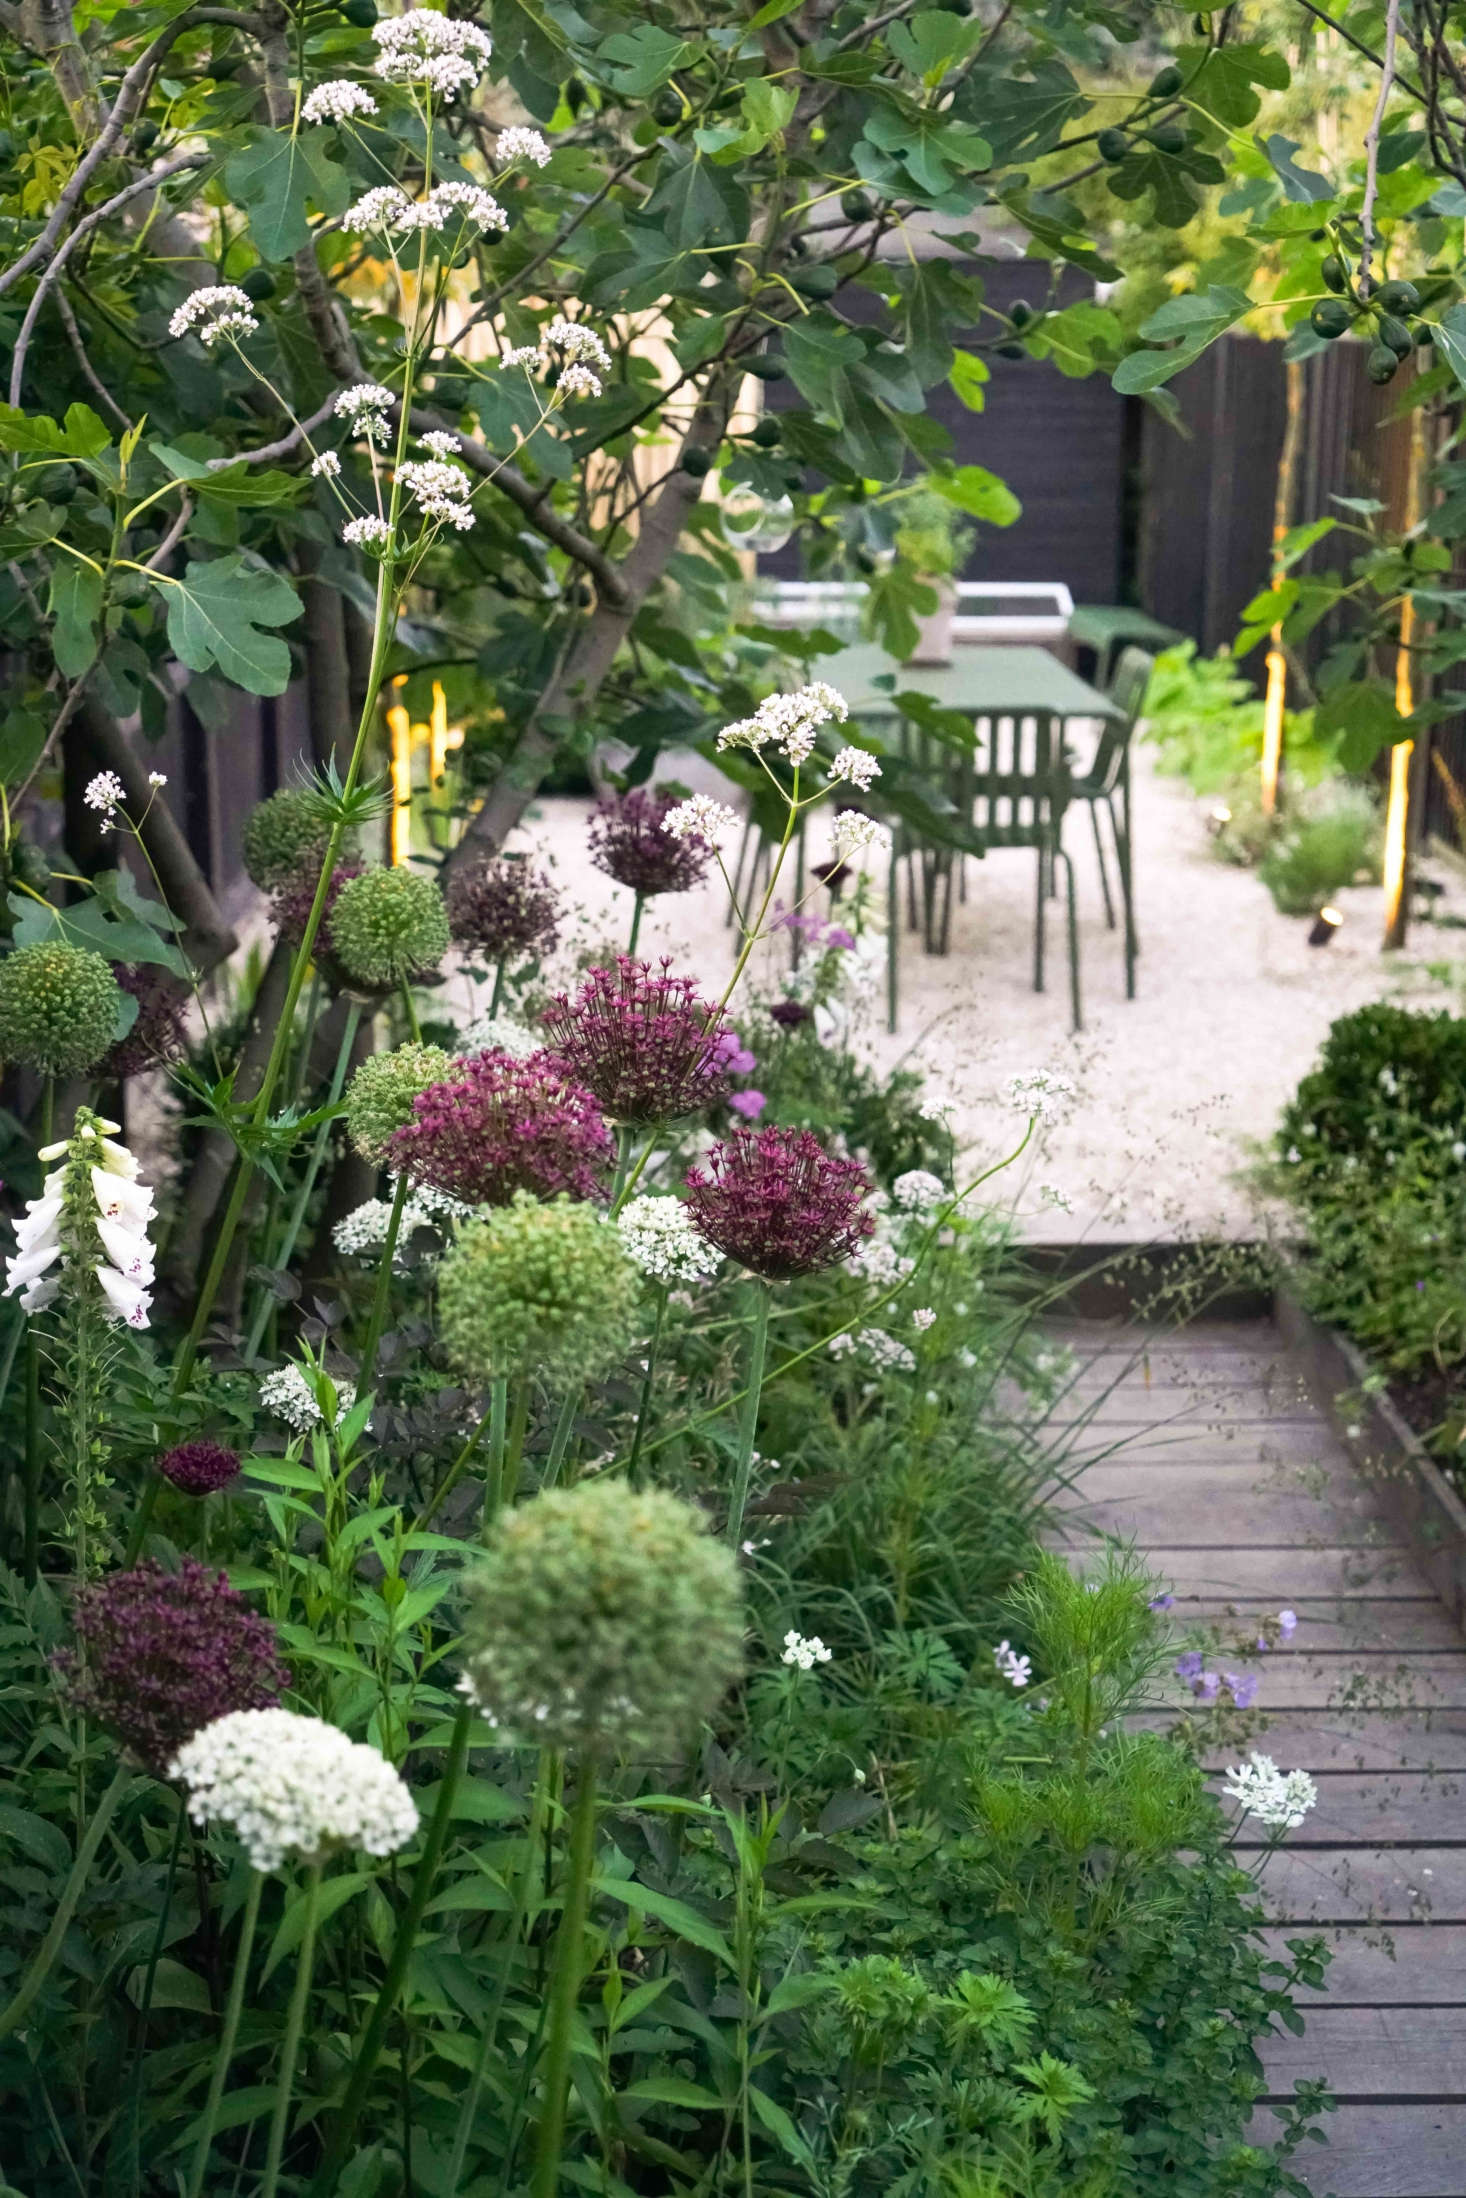 In the harbor town of Whitstable, Kent, designers Farlam & Chandler created a charming courtyard garden and breakfast terrace with subtle nods to the seaside like the crushed cockle shell surface and sunken English oak boardwalk. See more inBefore & After: A Seaside English Garden by Farlam & Chandler.